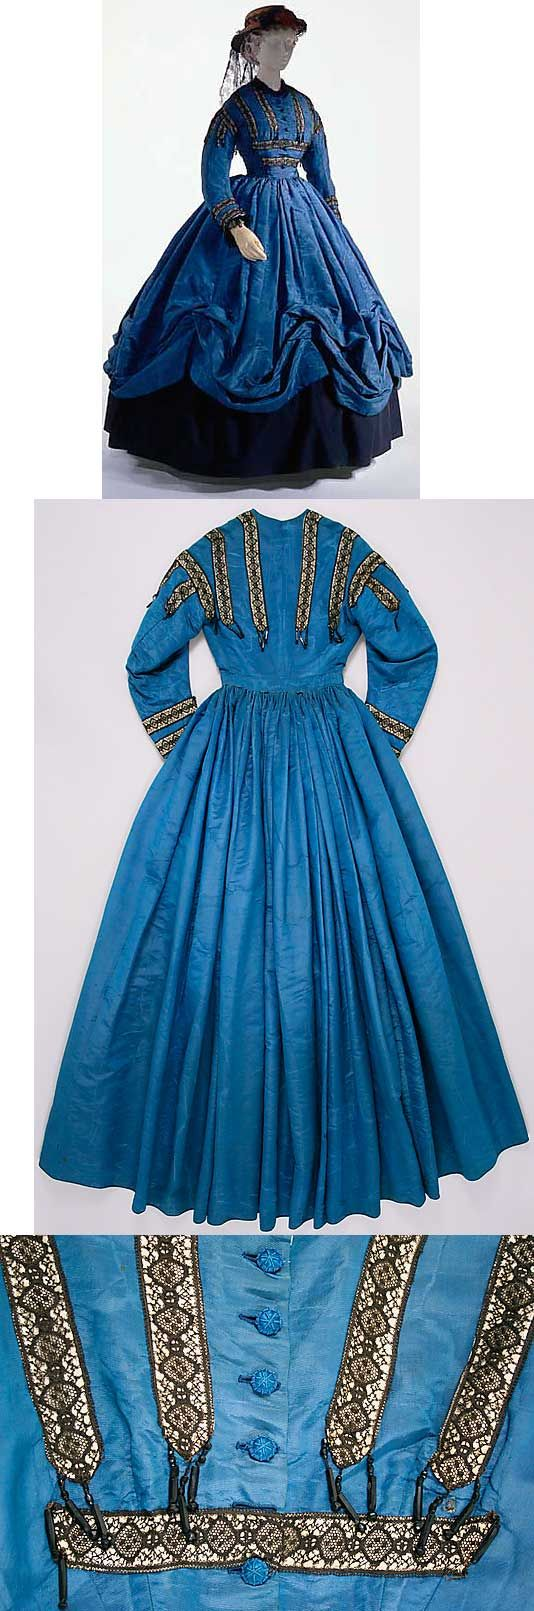 French silk dress, circa 1864. American walking dress, c. 1864, of blue watered silk, trimmed with black lace, white ribbon, and jet beads. metal rings sewn into the seams are designed to be used with a skirt lifting device to raise the skirt into swags over an underskirt.